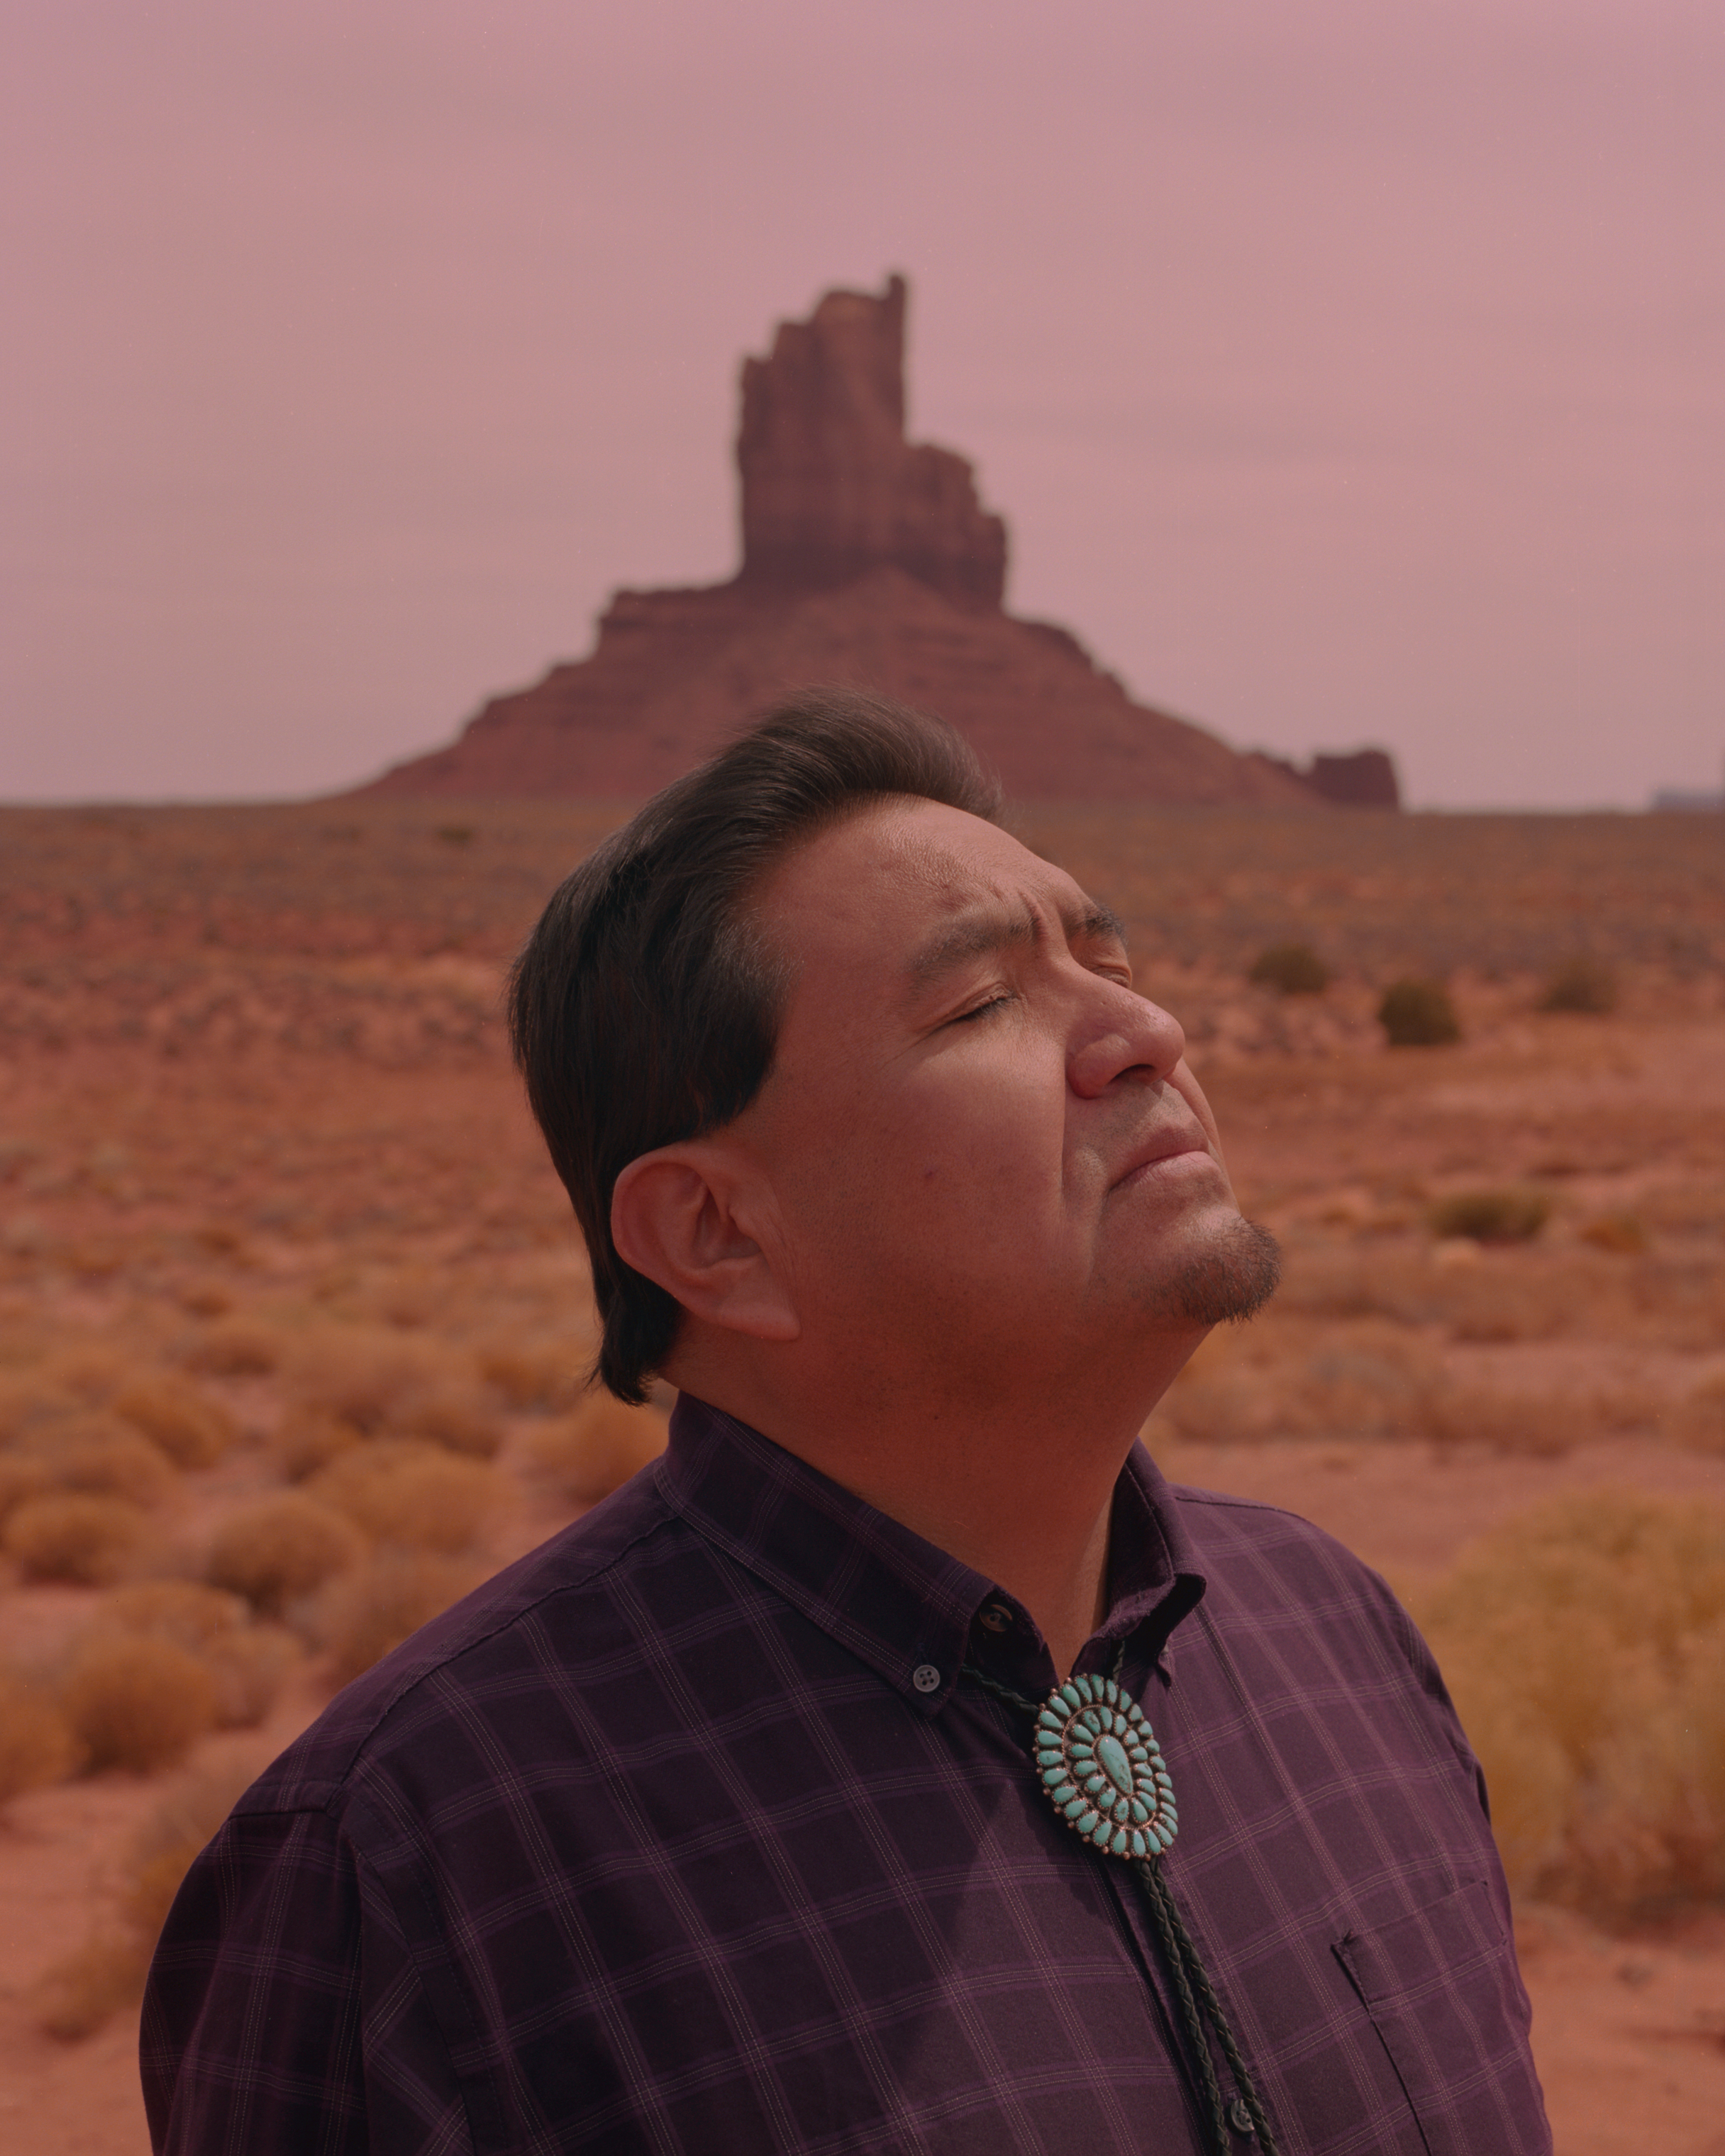 James Adakai, a Navajo tribal leader and commissioner, in front of the Big Chief Mesa in Monument Valley.Adakai was selected as commissioner of the Bears Ears Coalition to protect the land during Obama's presidency. Now residing in Window Rock, AZ, he frequently makes hour long trips to Monument Valley and Bears Ears for meetings and efforts towards the fight to protect the land.